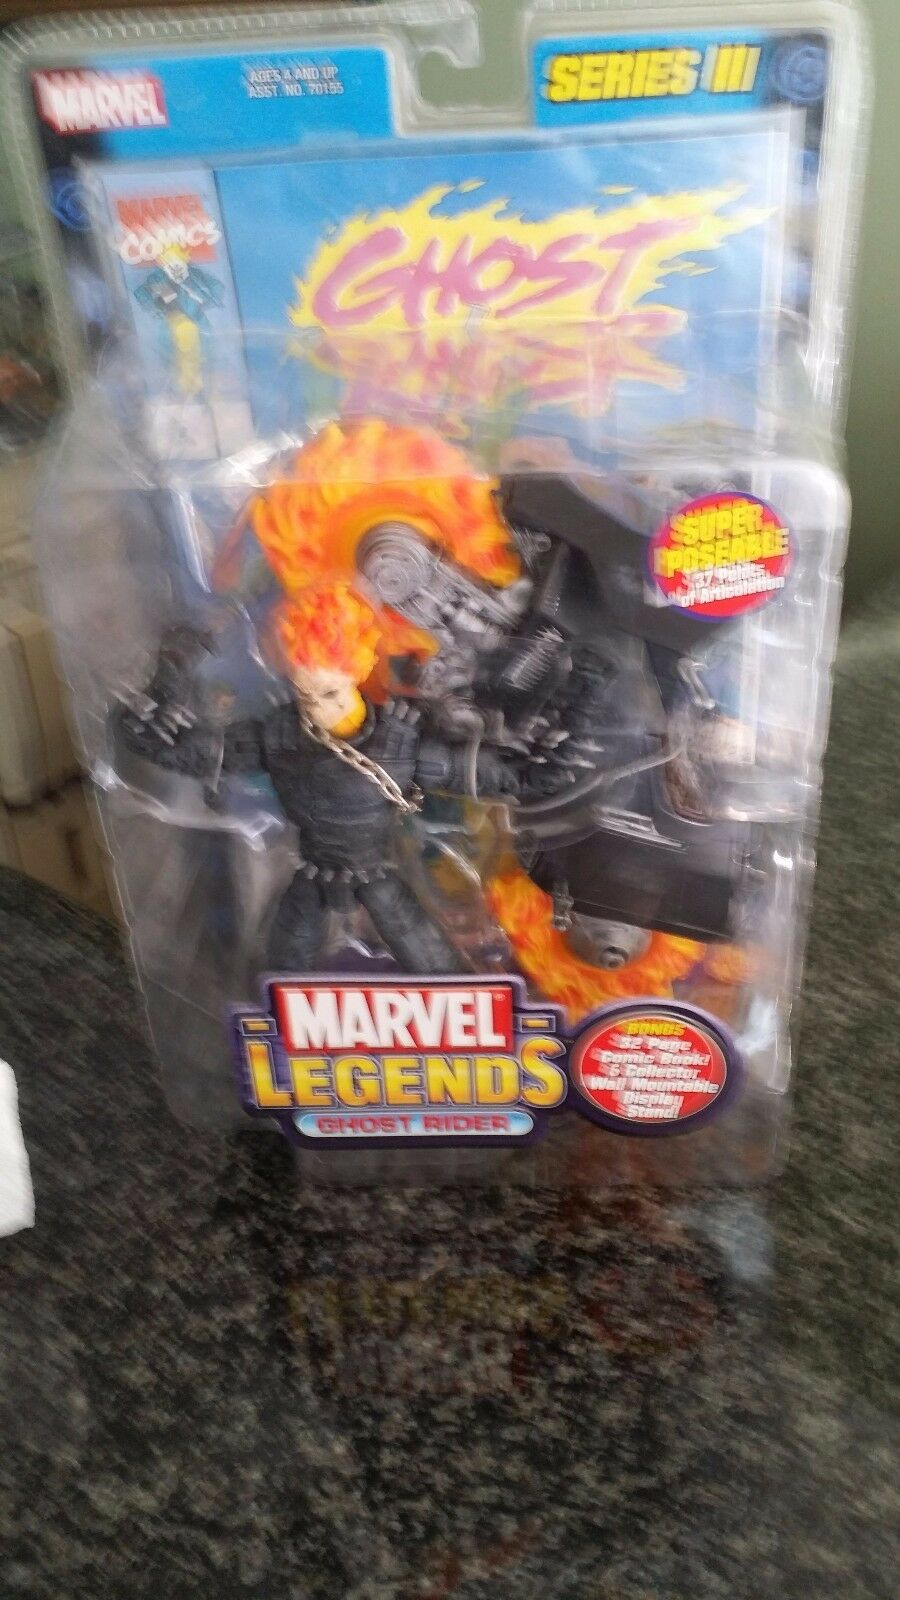 MARVEL LEGENDS GHOST RIDER SERIES III. BONUS BONUS BONUS 32 PAGE COMIC BOOK & WALL MOUNT ST 750378